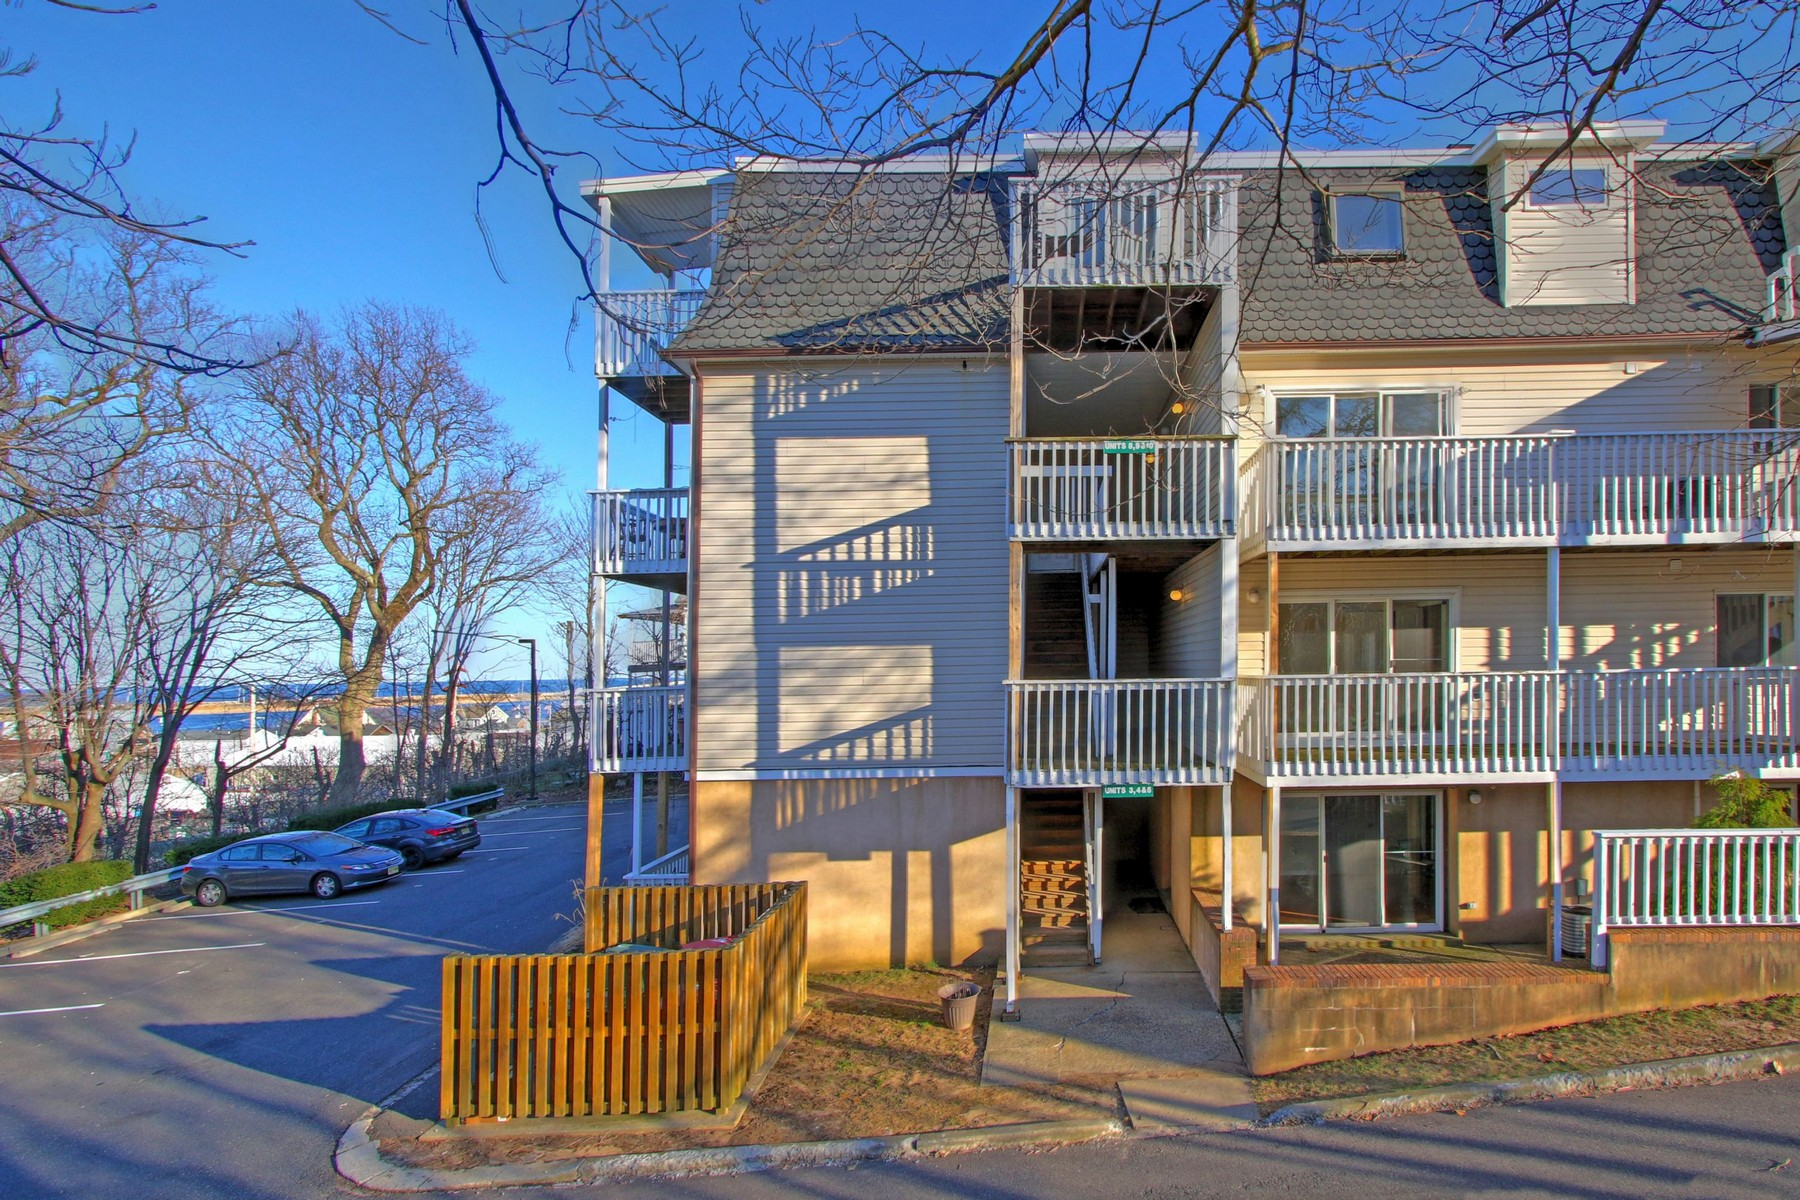 Condominium for Sale at Vista Bay 100 Navesink Ave. #9, Highlands, New Jersey 07732 United States